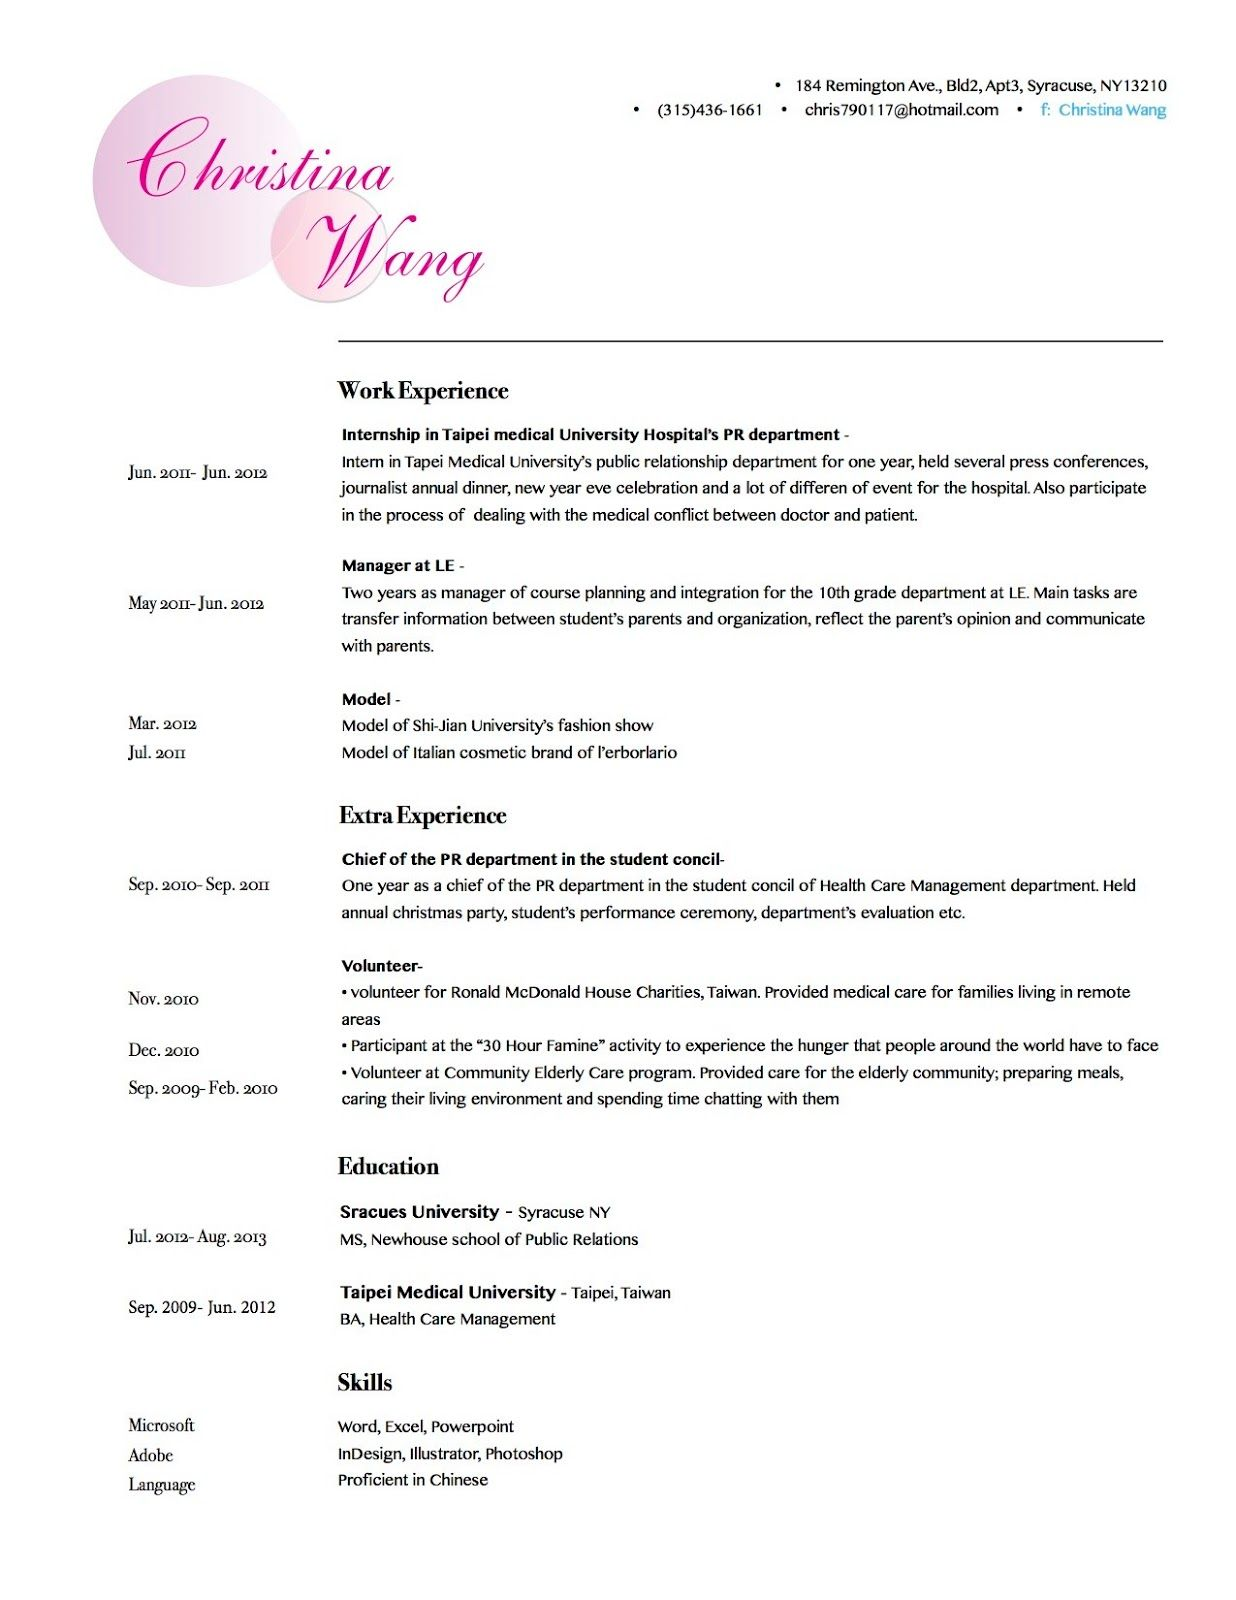 reasons it is smart to use a resume template to write your own resume - How To Write Your Own Resume